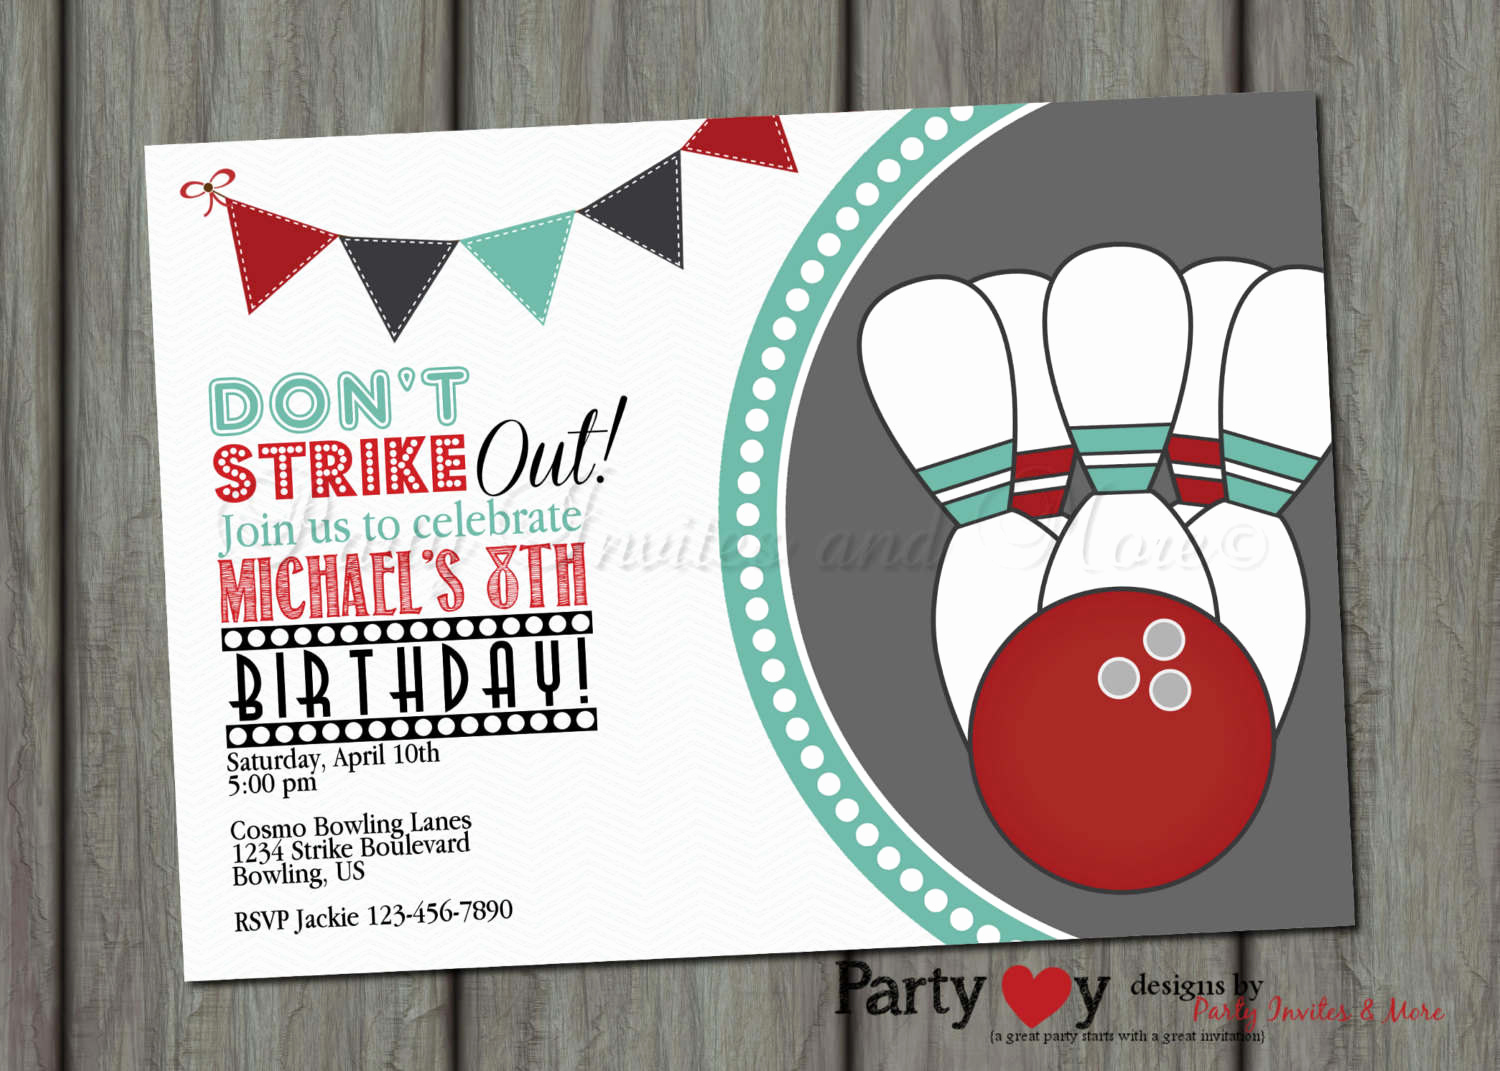 Bowling Party Invitation Template New Bowling Party Invitation Templates Free